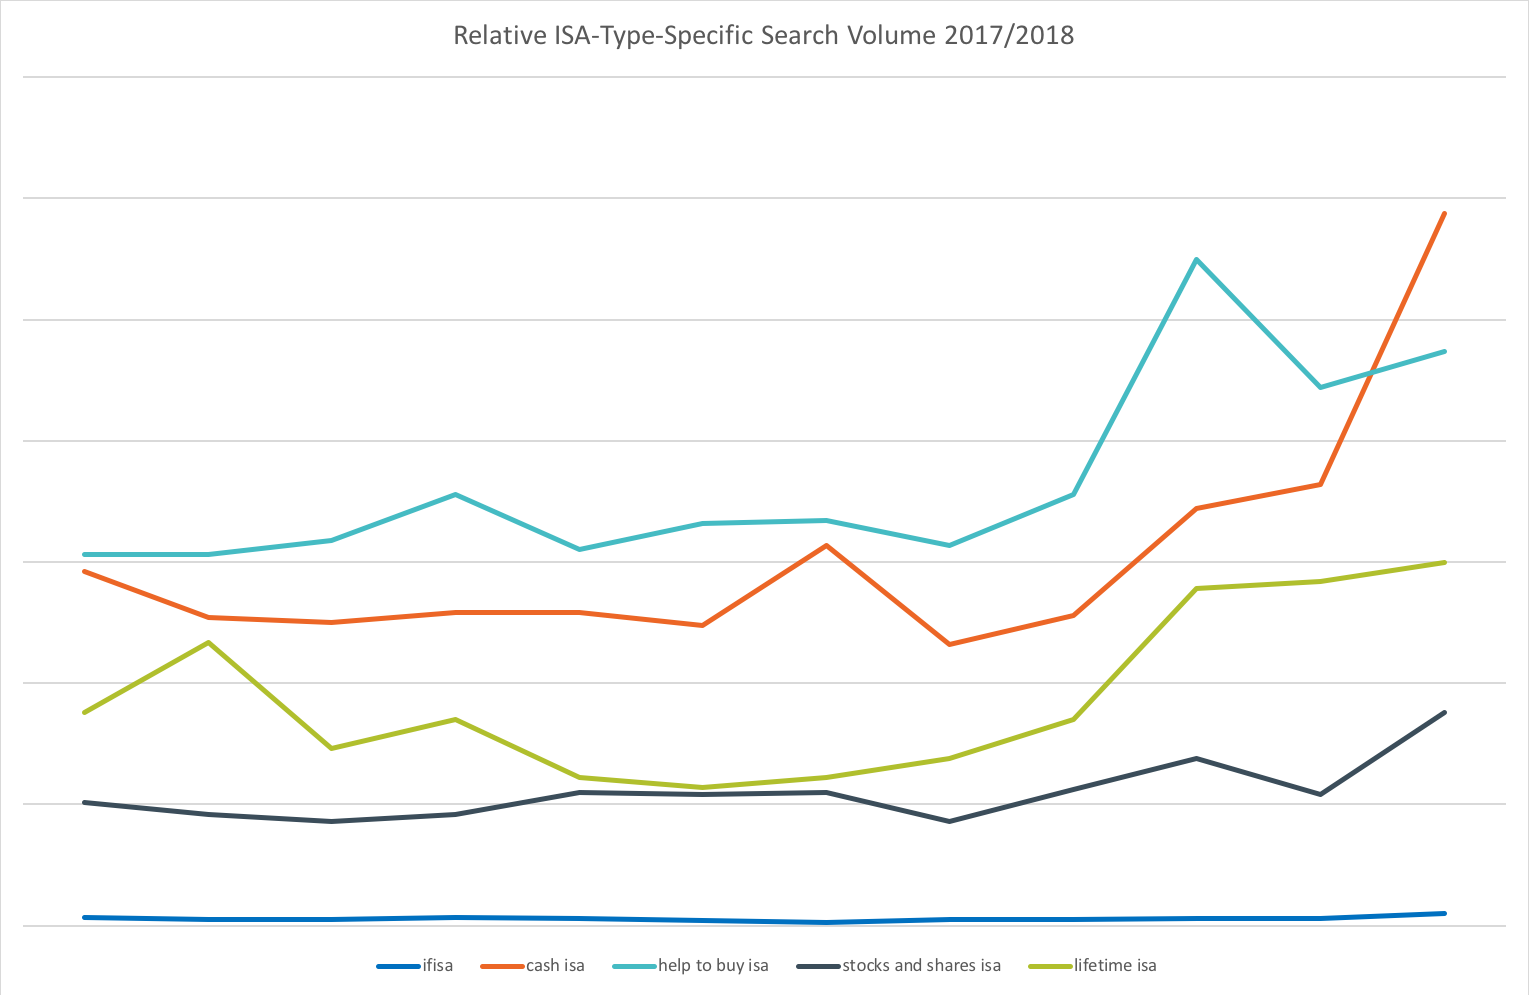 Relative ISA-Type-Specific Search Volumes 2017/2018